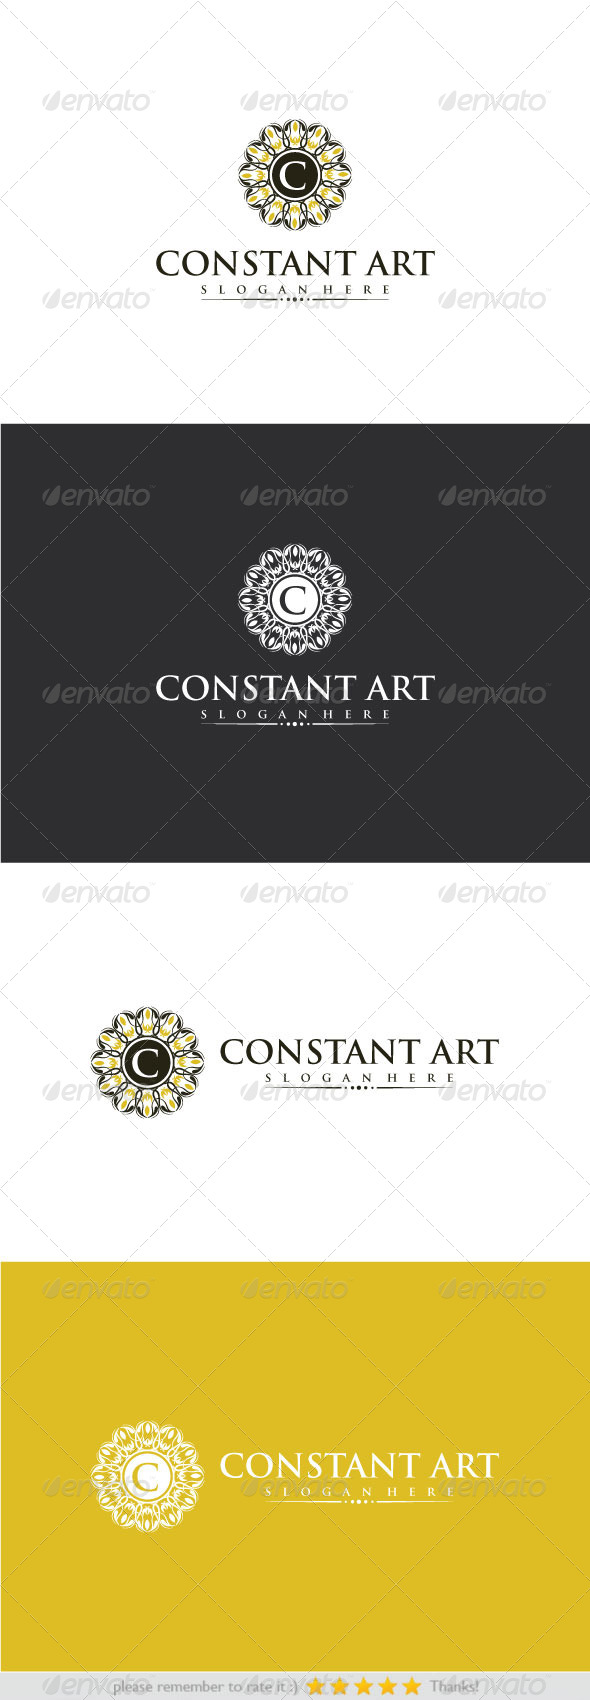 GraphicRiver Constant Art 8296841